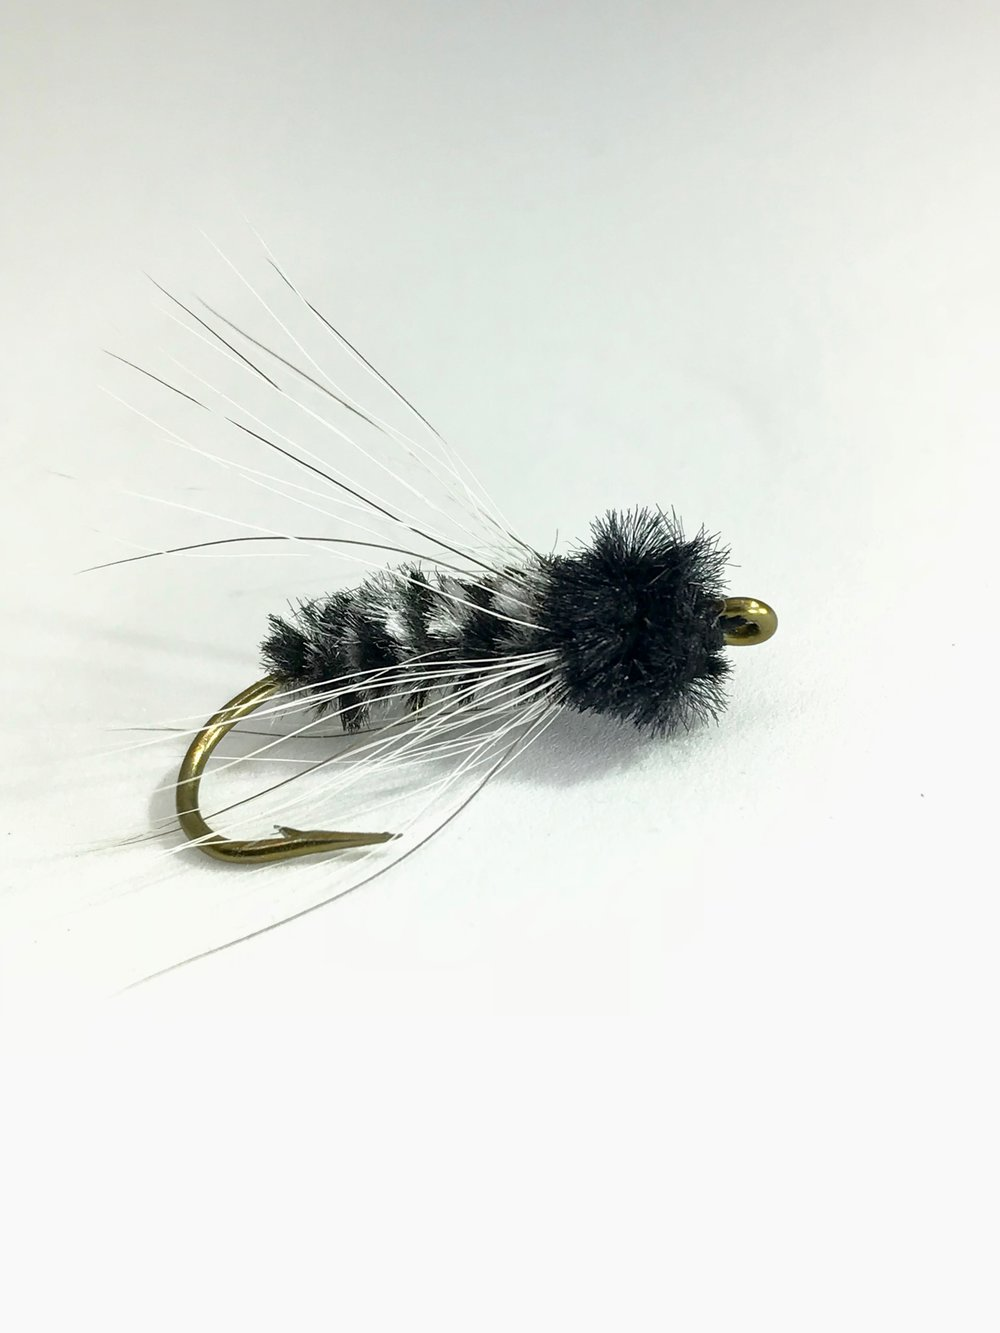 A variation of the James Wood Bucktail meant to imitate a baby crappie.